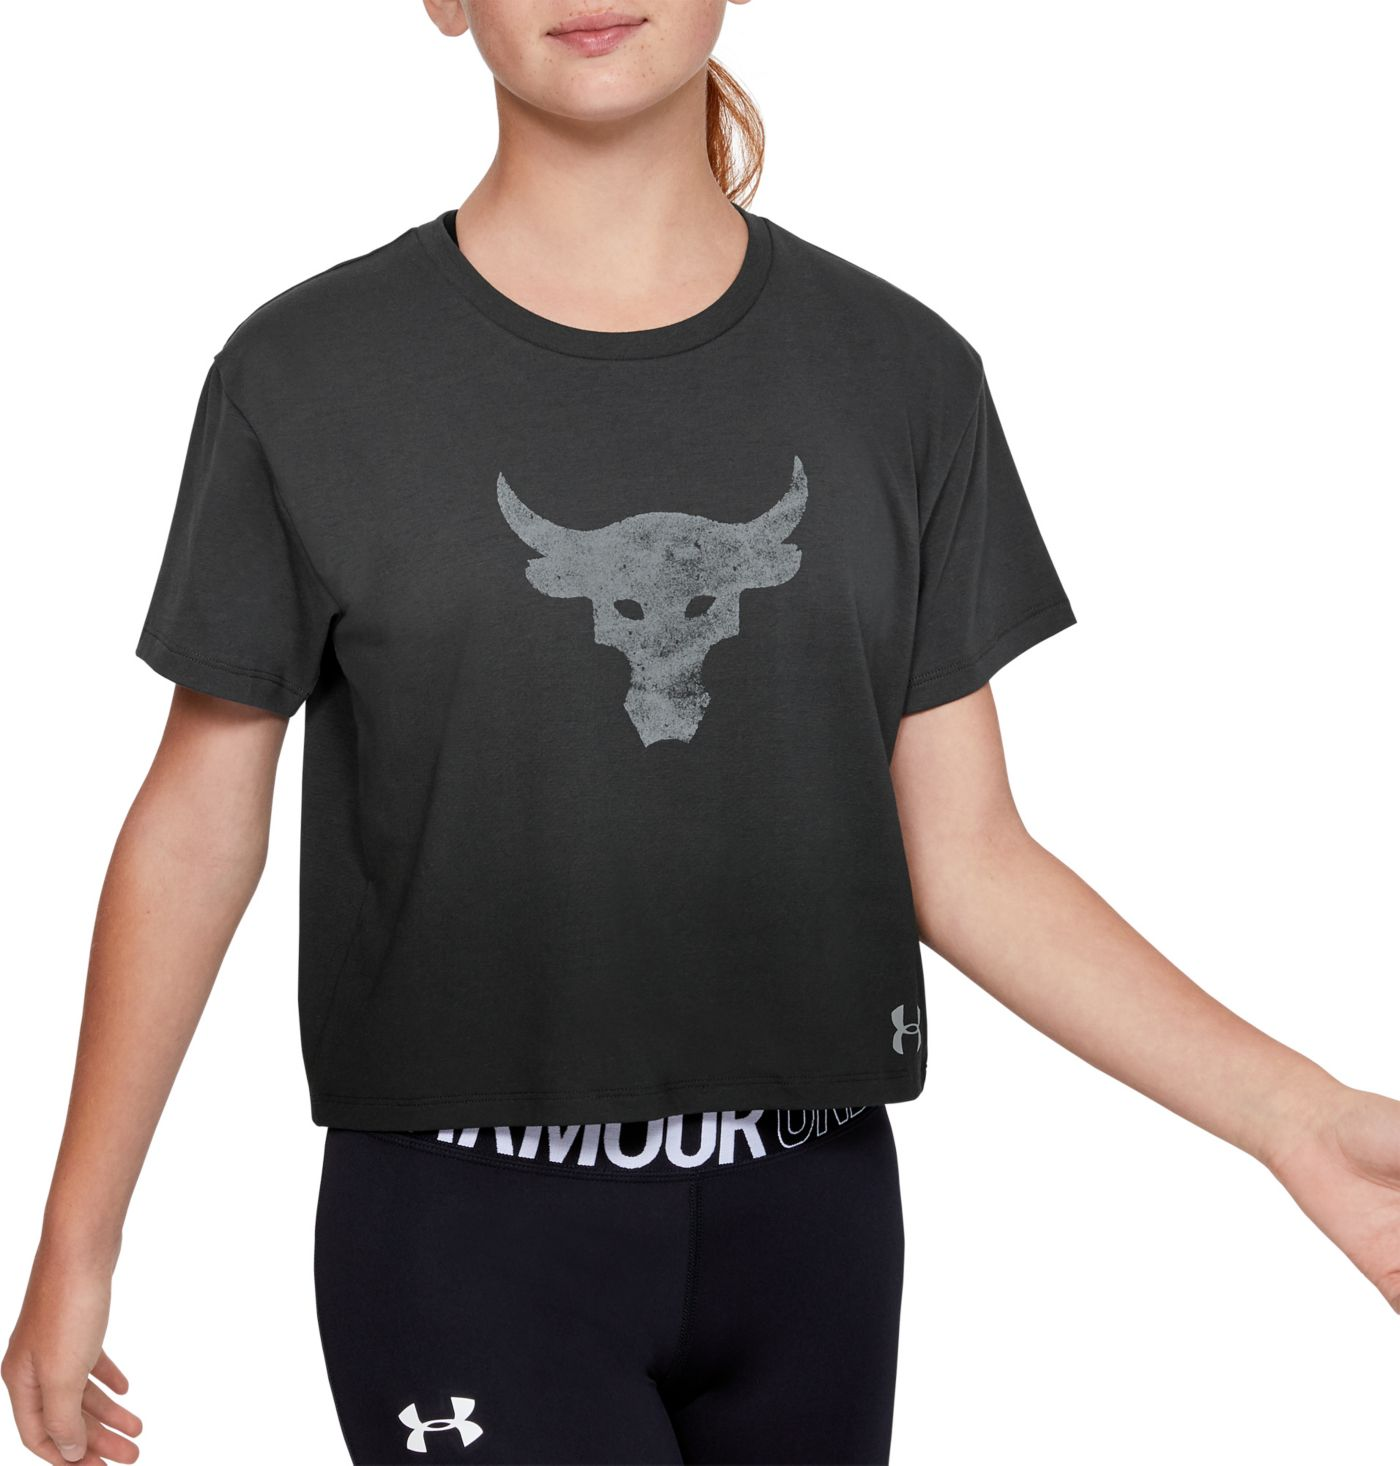 Under Armour Girls' Project Rock Graphic Cropped T-Shirt